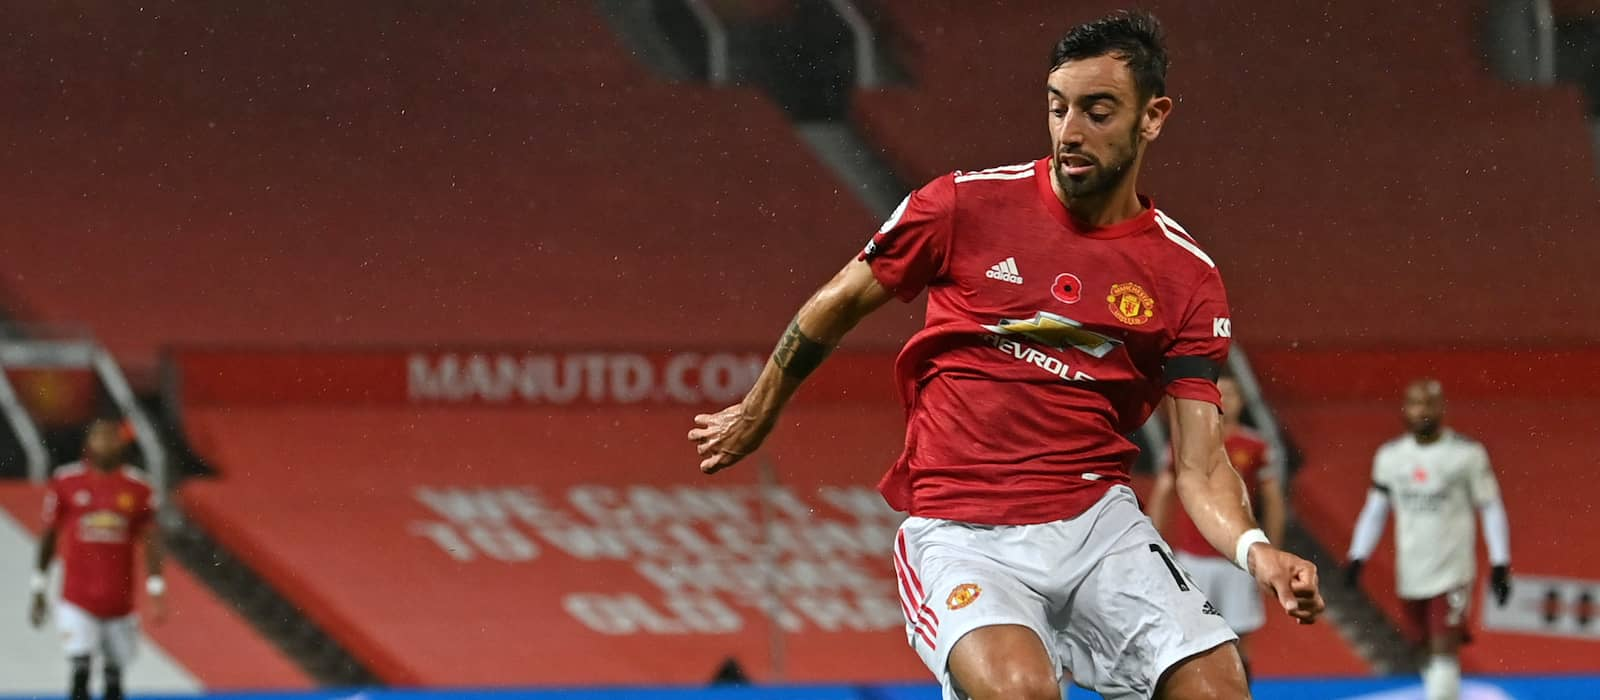 Bruno Fernandes calls for fighting spirit amidst Manchester United form